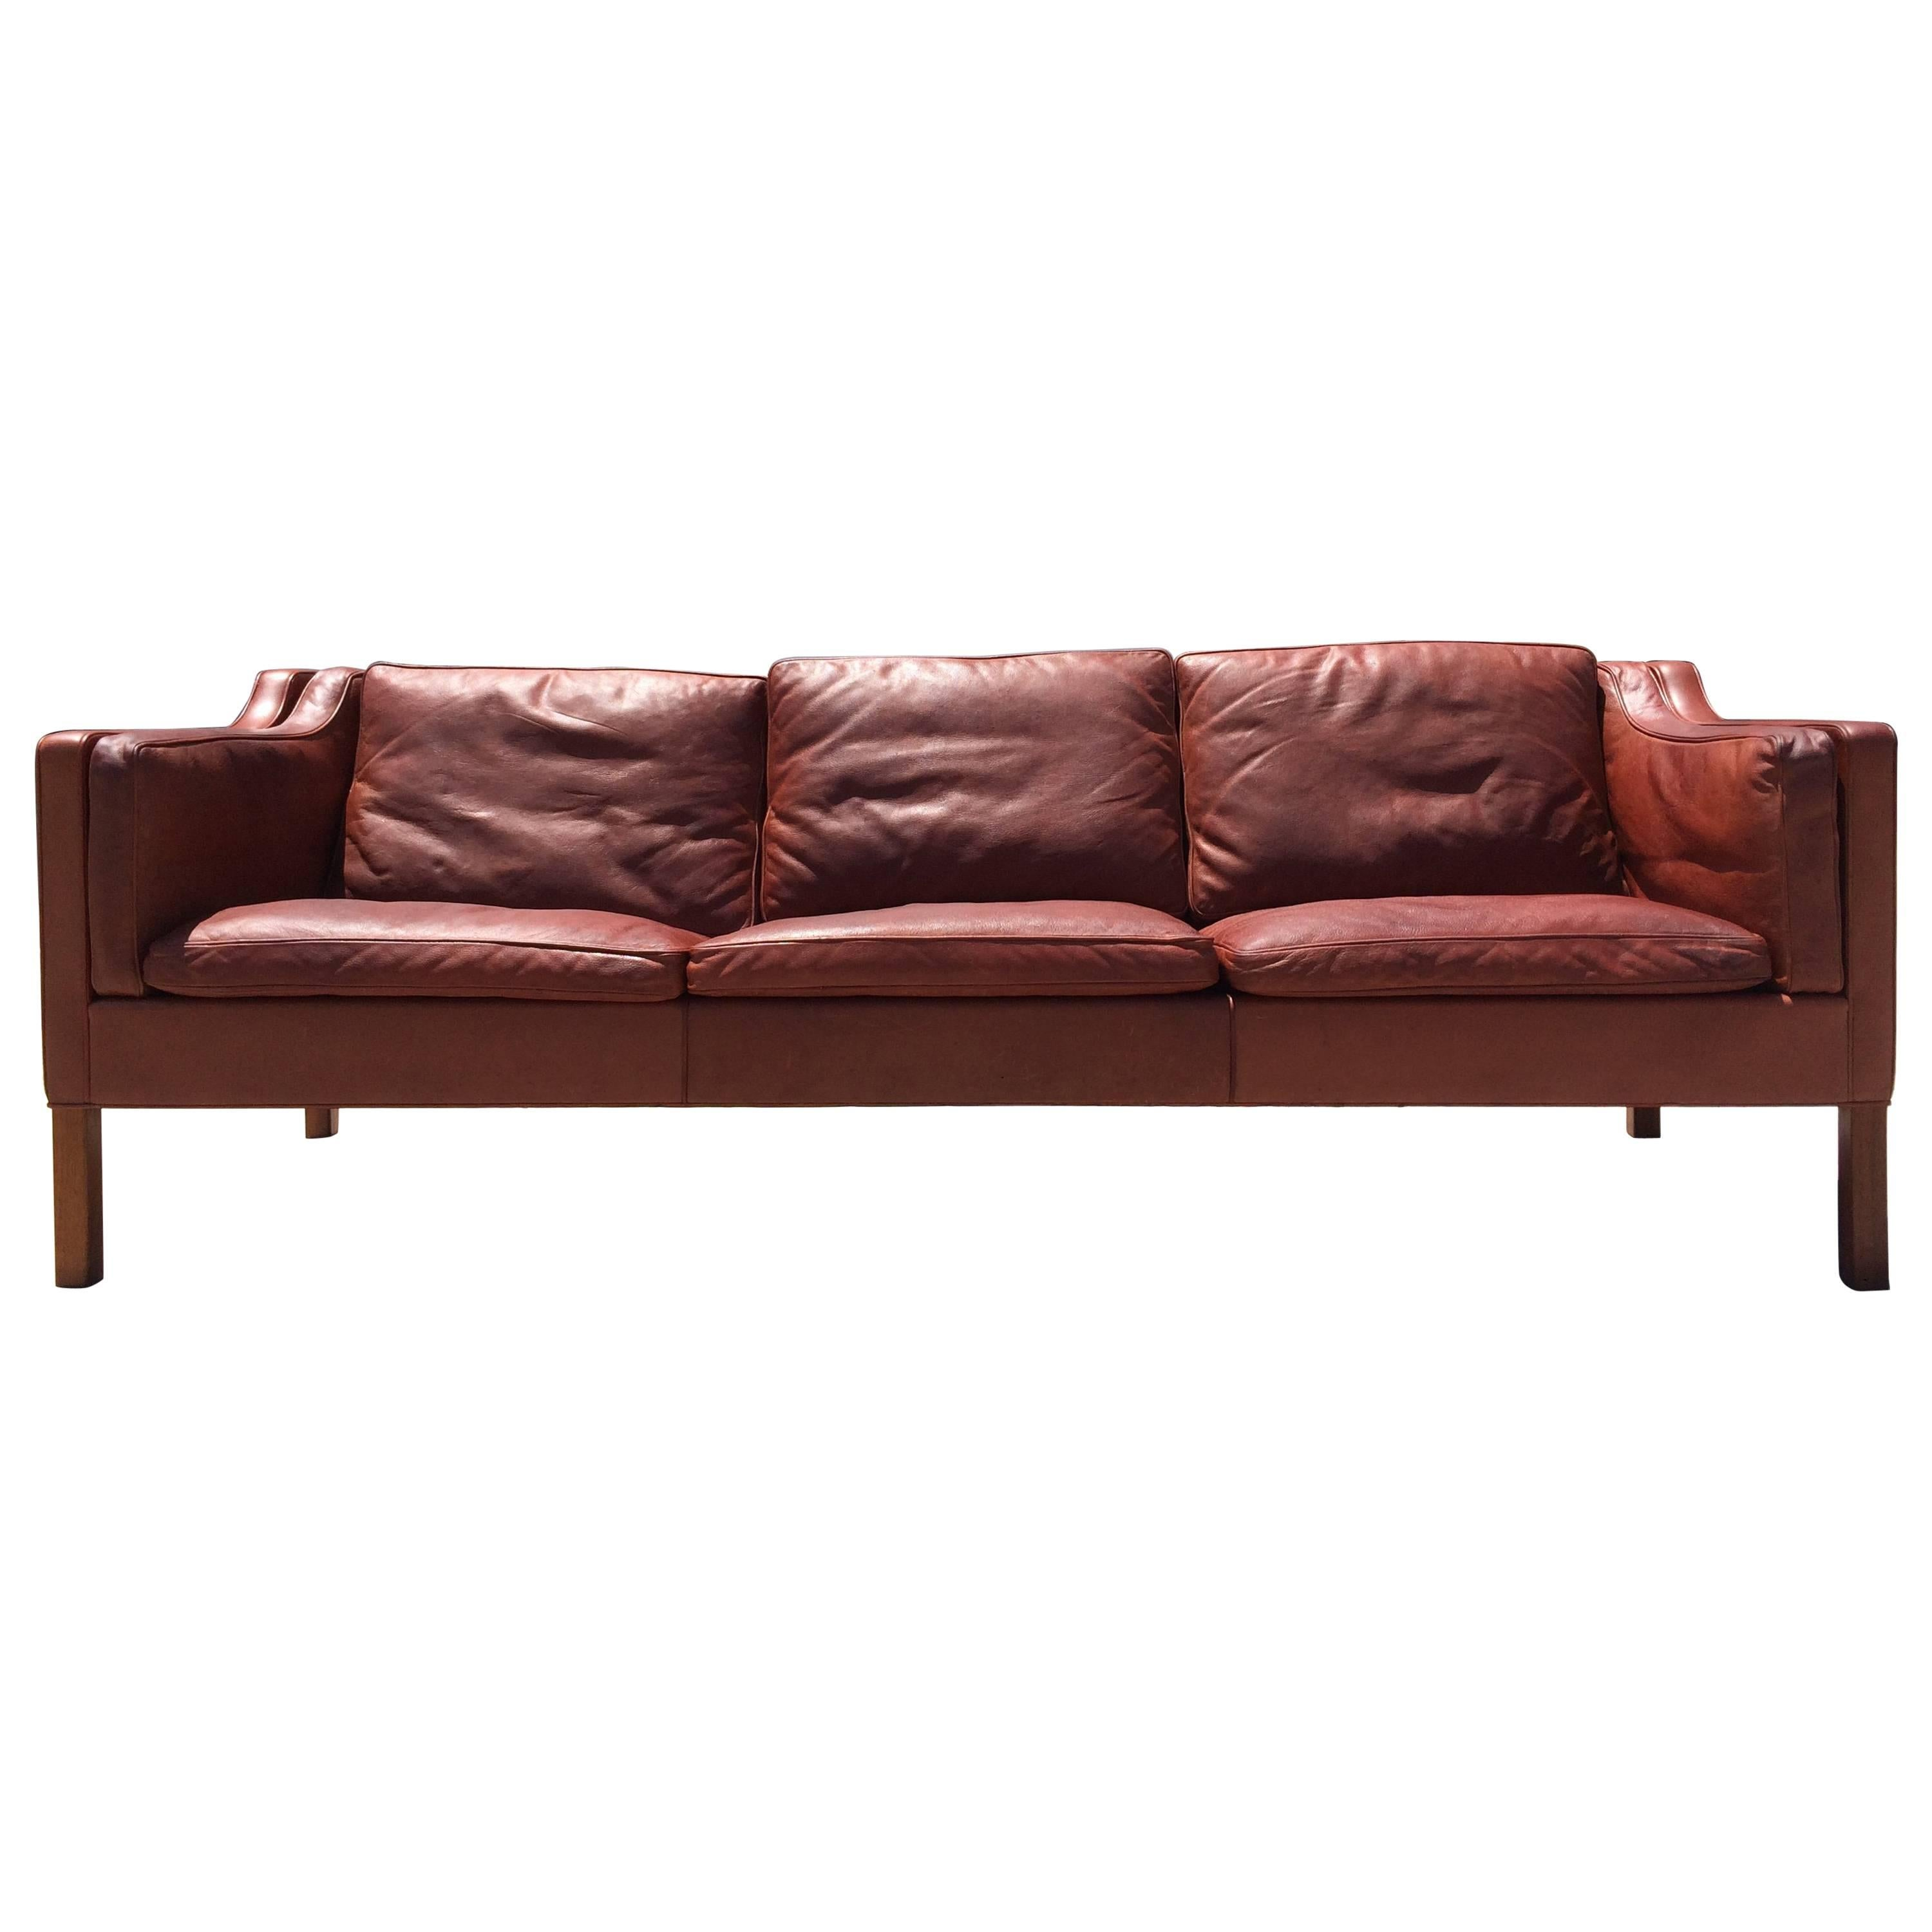 beautiful cognac leather sofa by brge mogensen